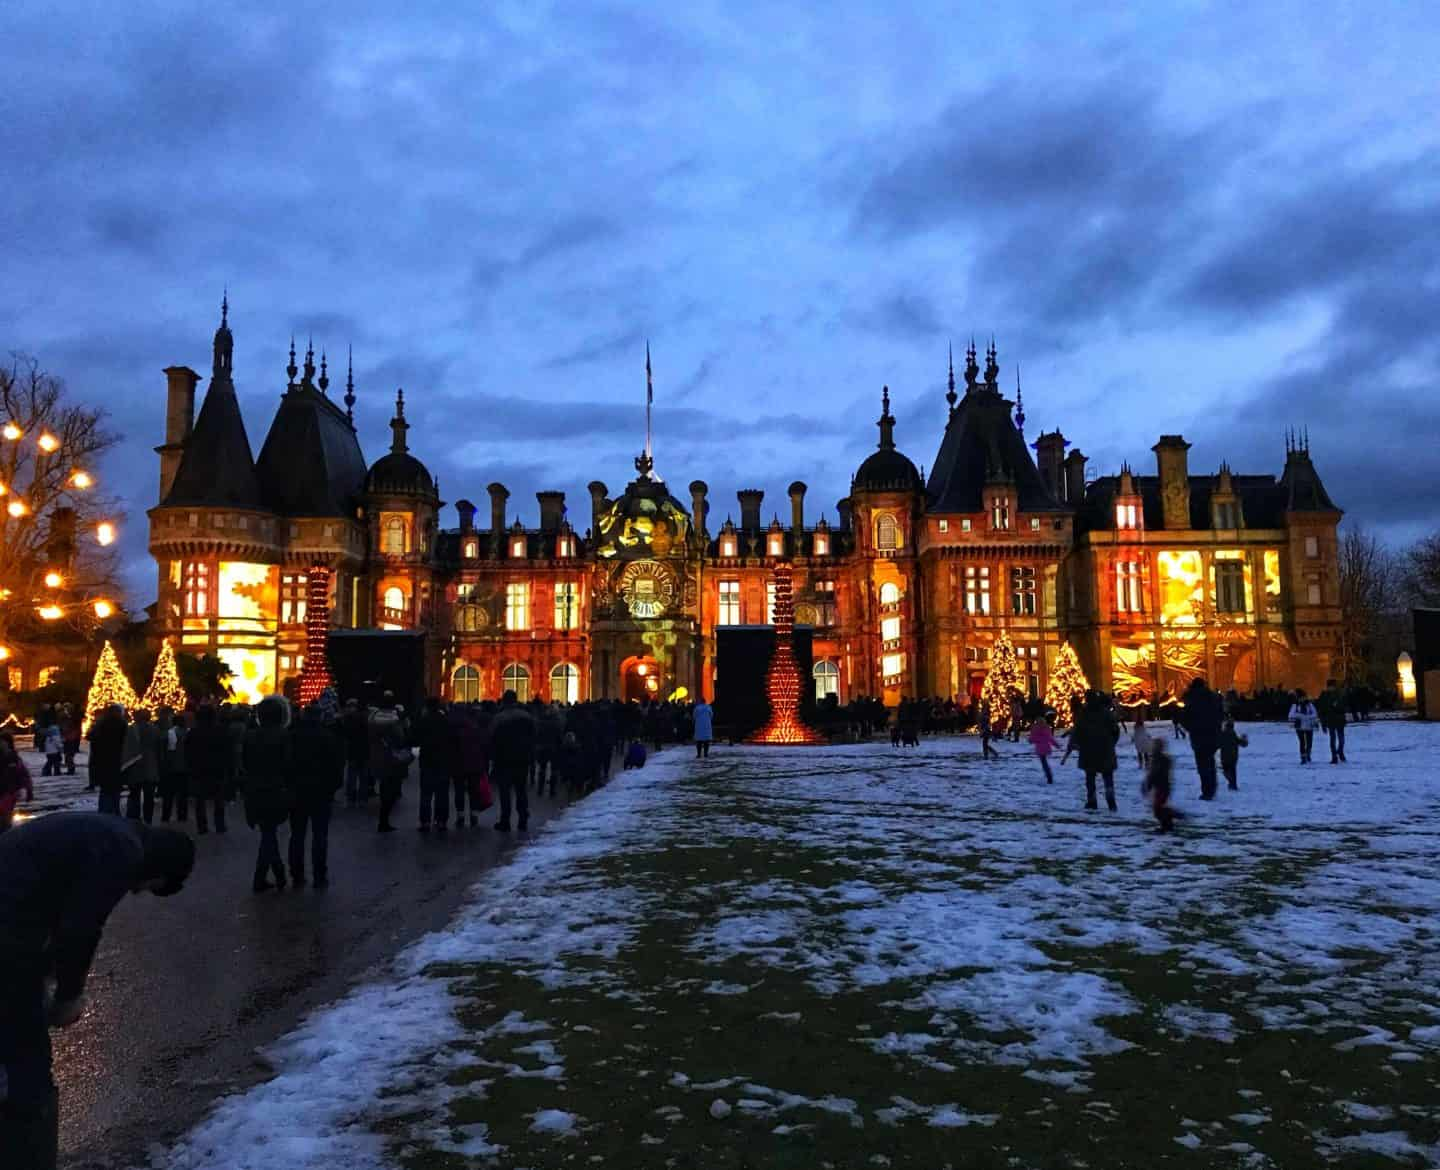 Magical Waddesdon Manor at Christmas